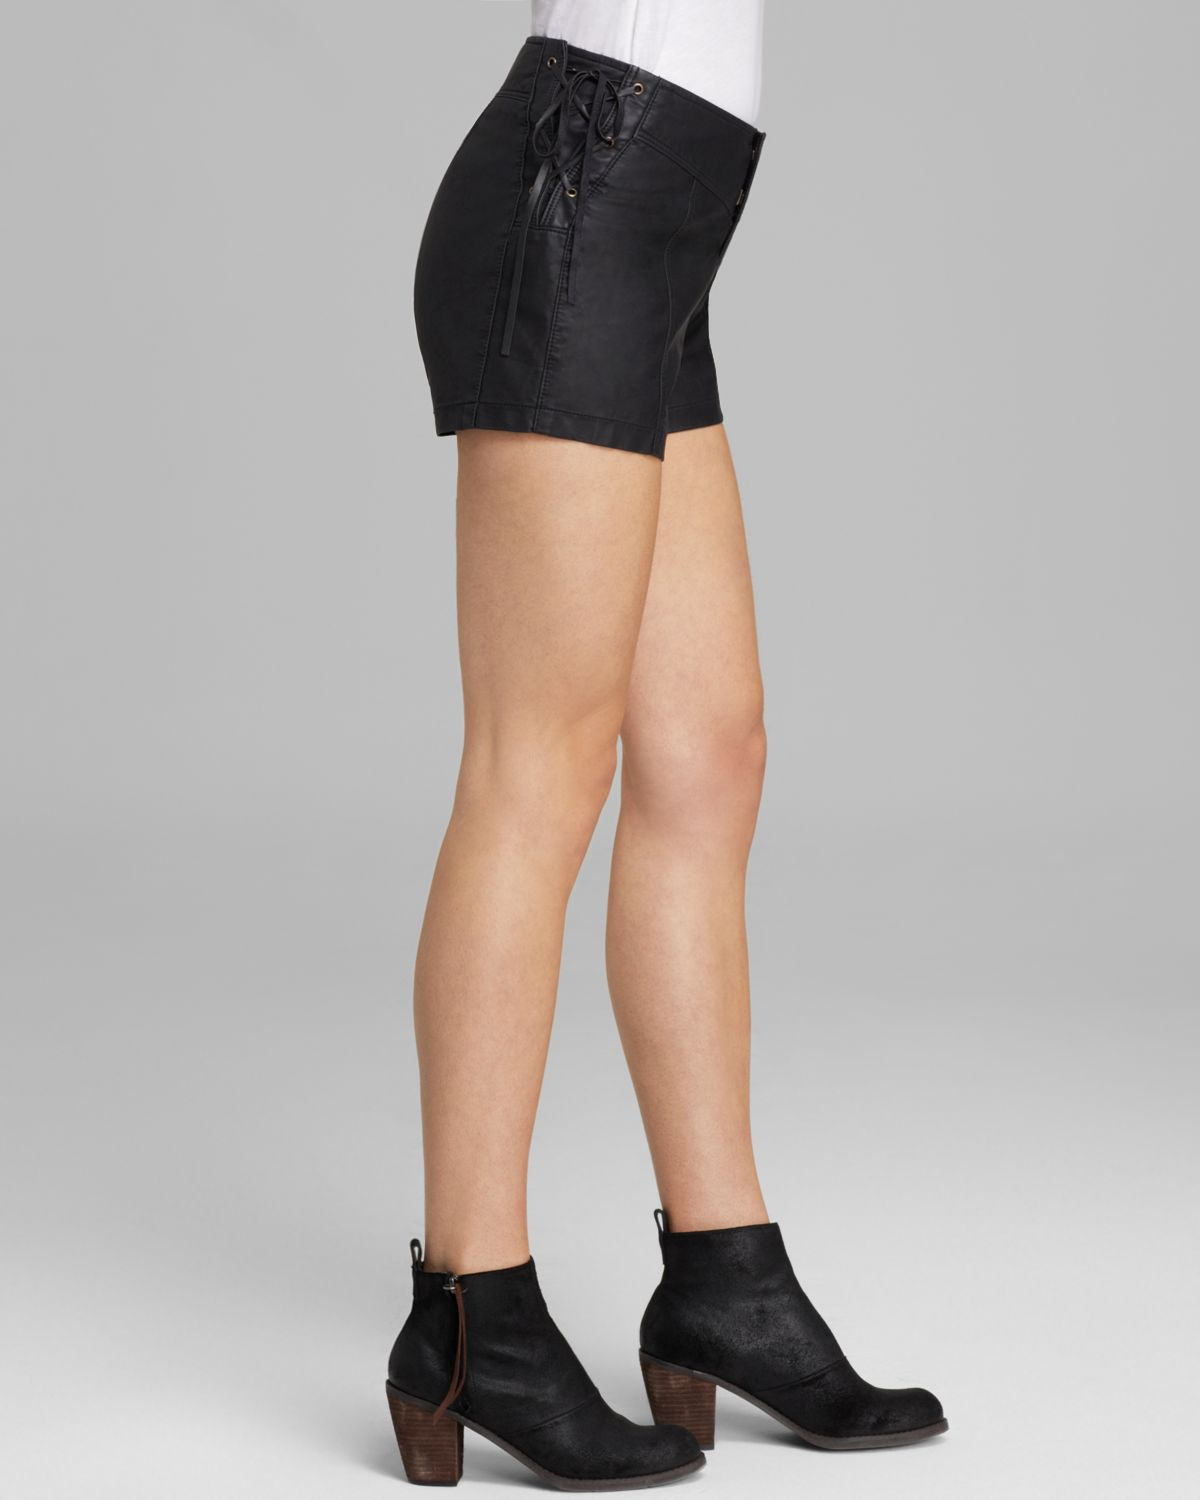 Free people Shorts - Faux Leather High Waist in Black | Lyst